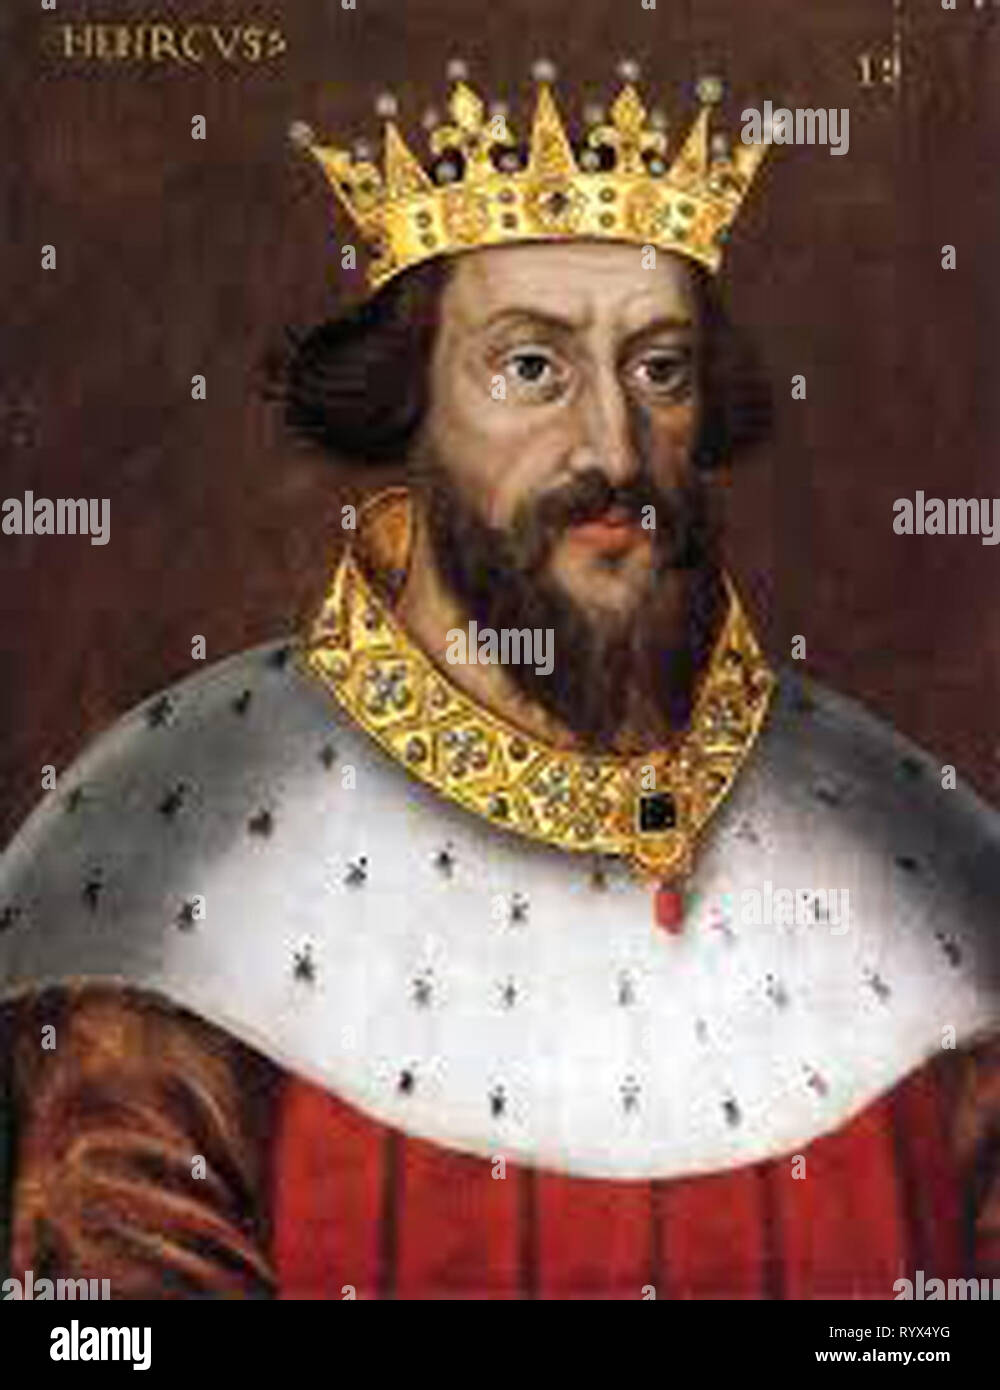 King Henry  Henry I, also known as Henry Beauclerc, was King of England from 1100 to his death in 1135. Henry was the fourth son of William the Conqueror and was educated in Latin and the liberal arts - Stock Image